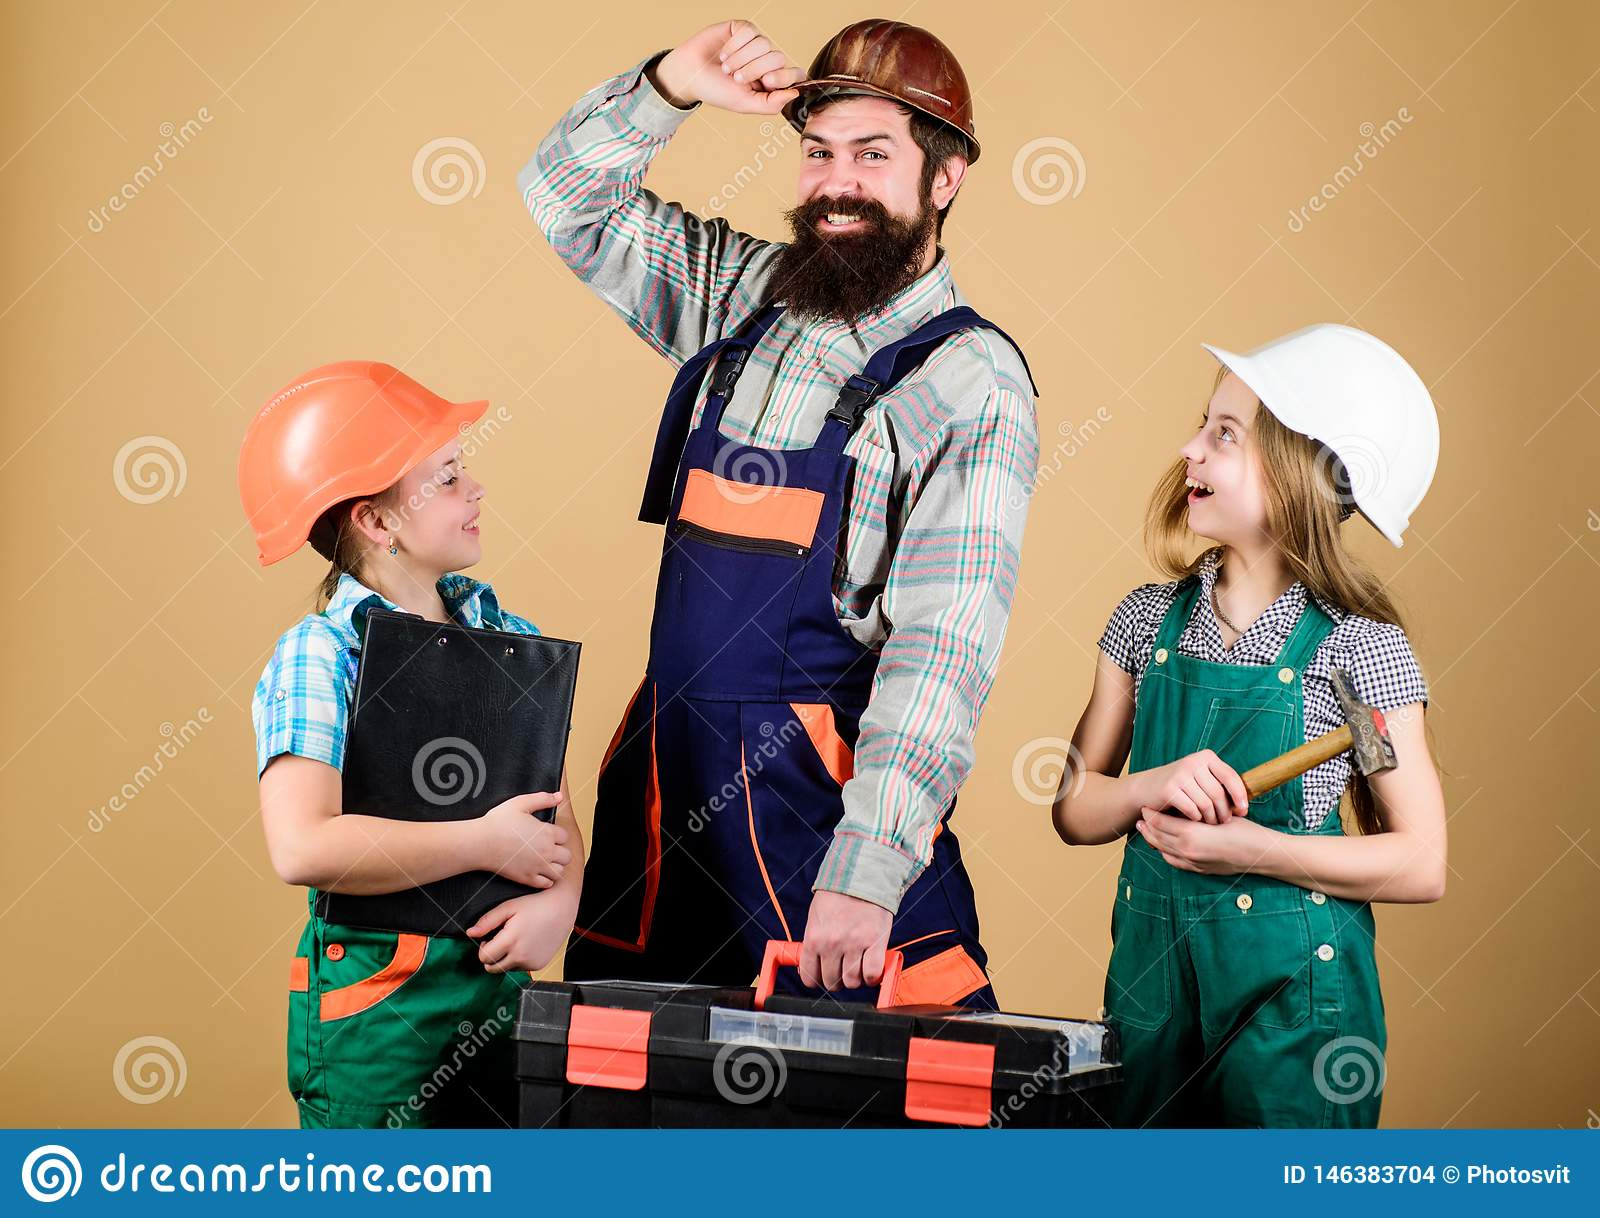 Informal education. Fathers day. Sisters help father builder. Home renovation. Create room you really want live. Follow